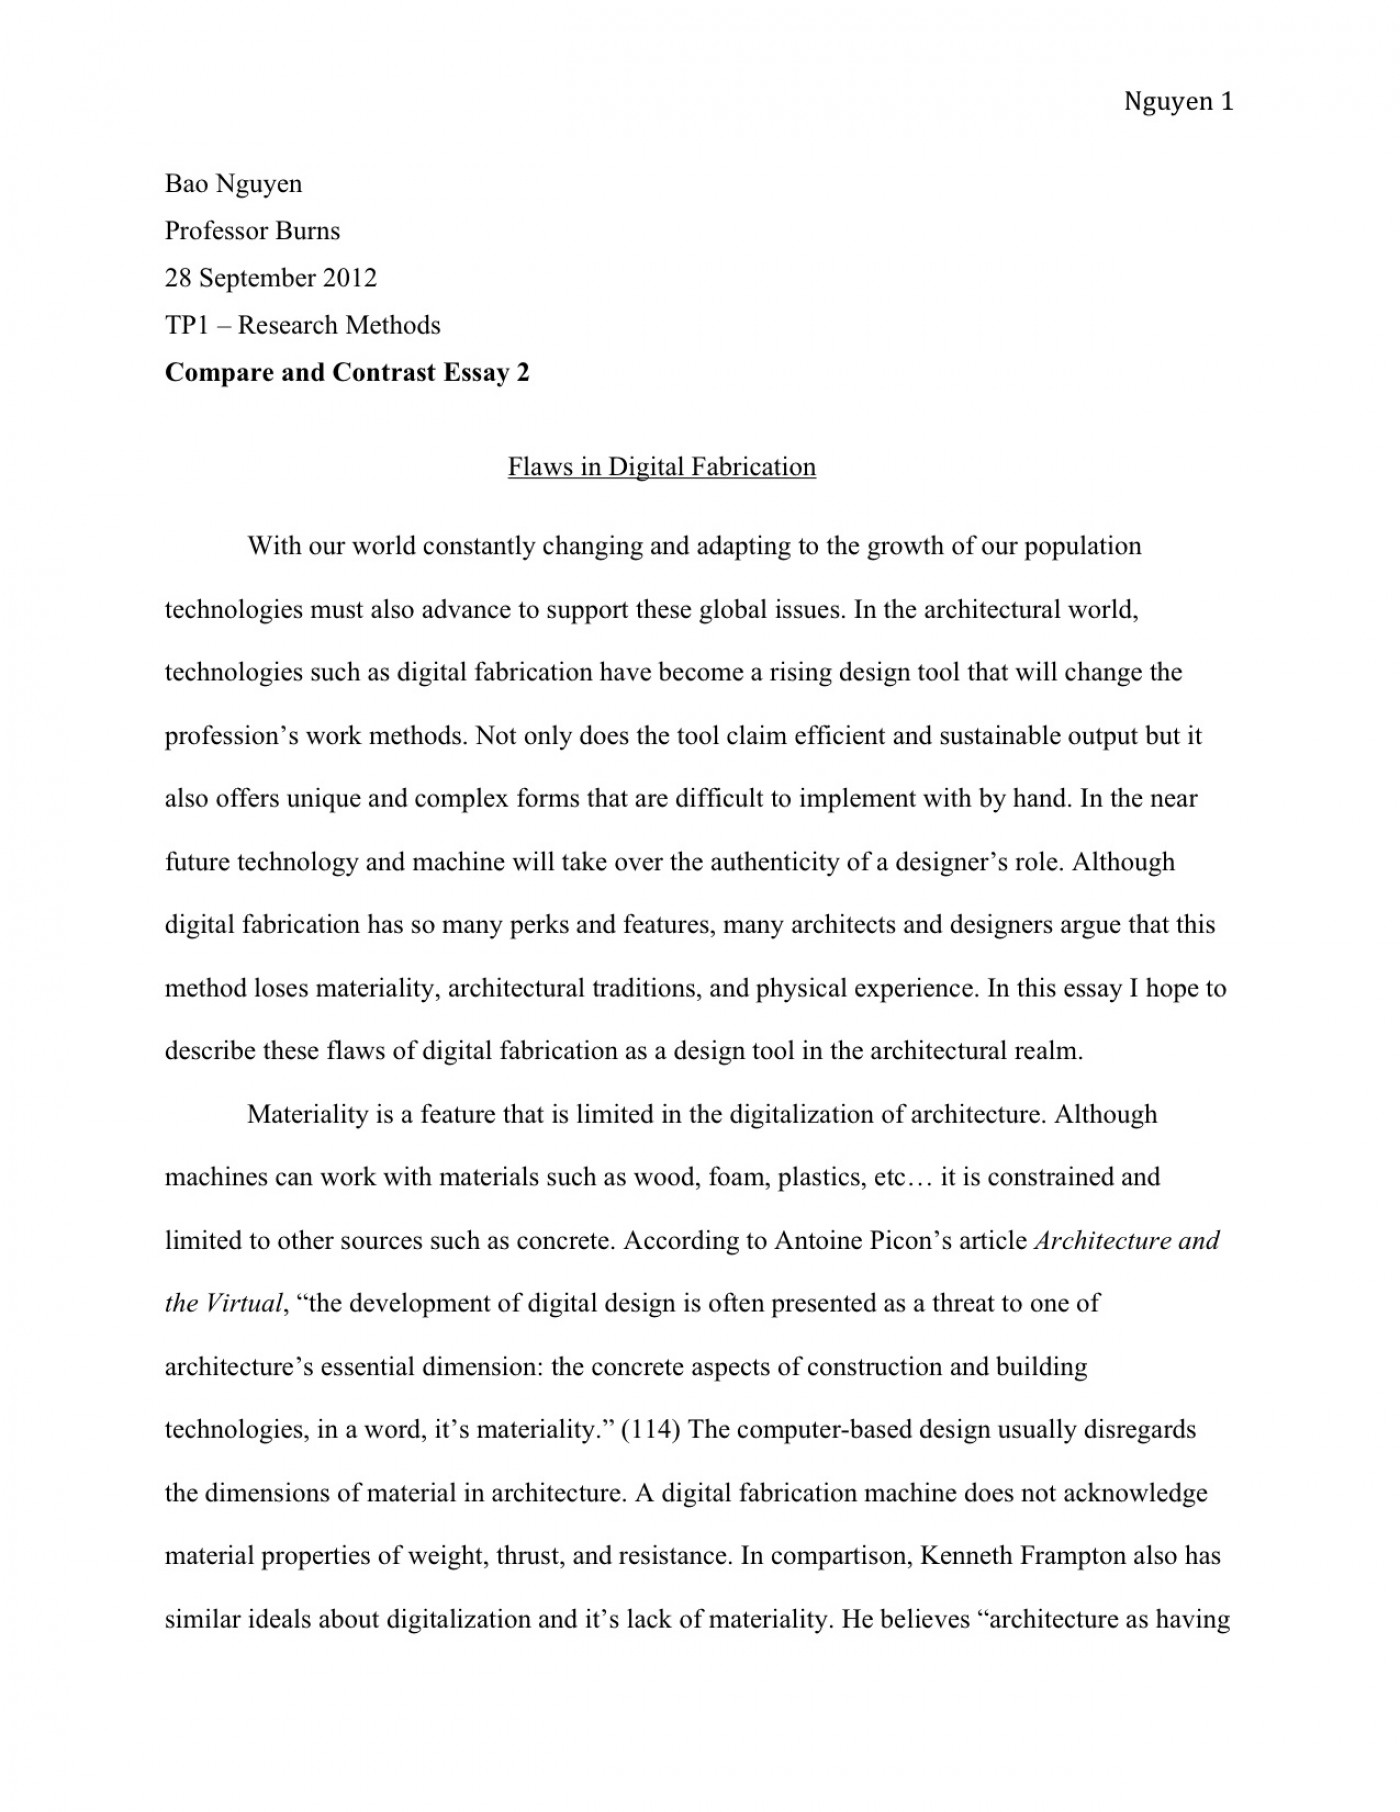 005 How To Write An Essay Example Tp1 3 Shocking In Mla Format 2018 Introduction For College Paper Apa 1400